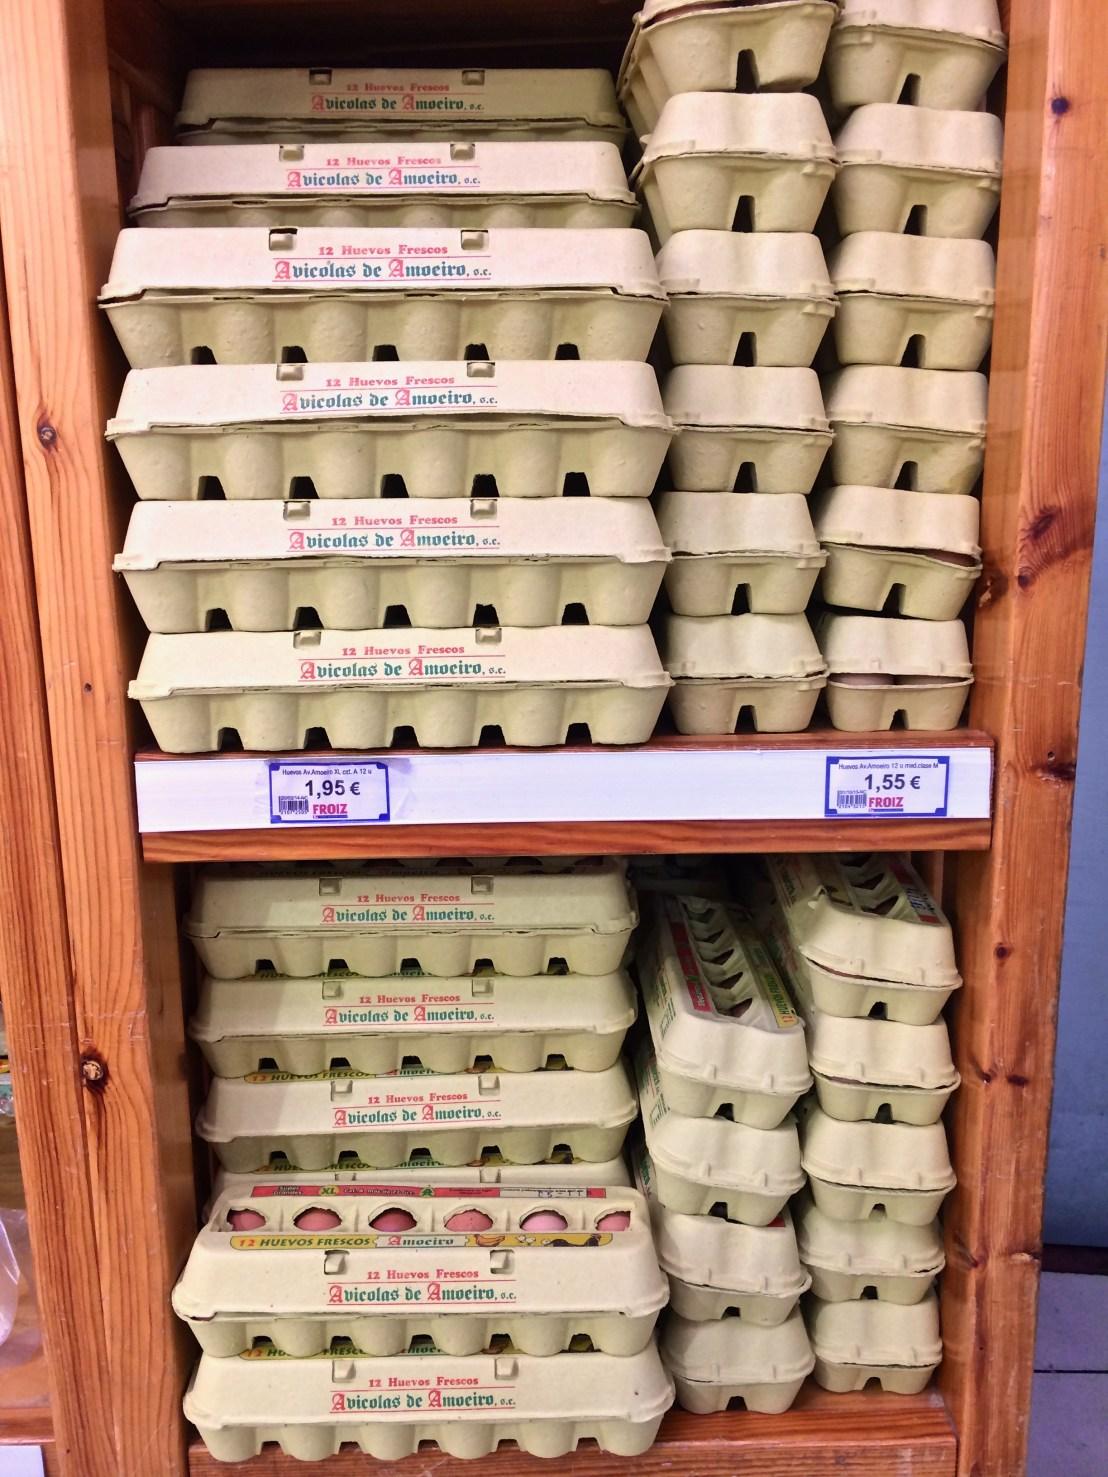 Europe grocery stores-eggs